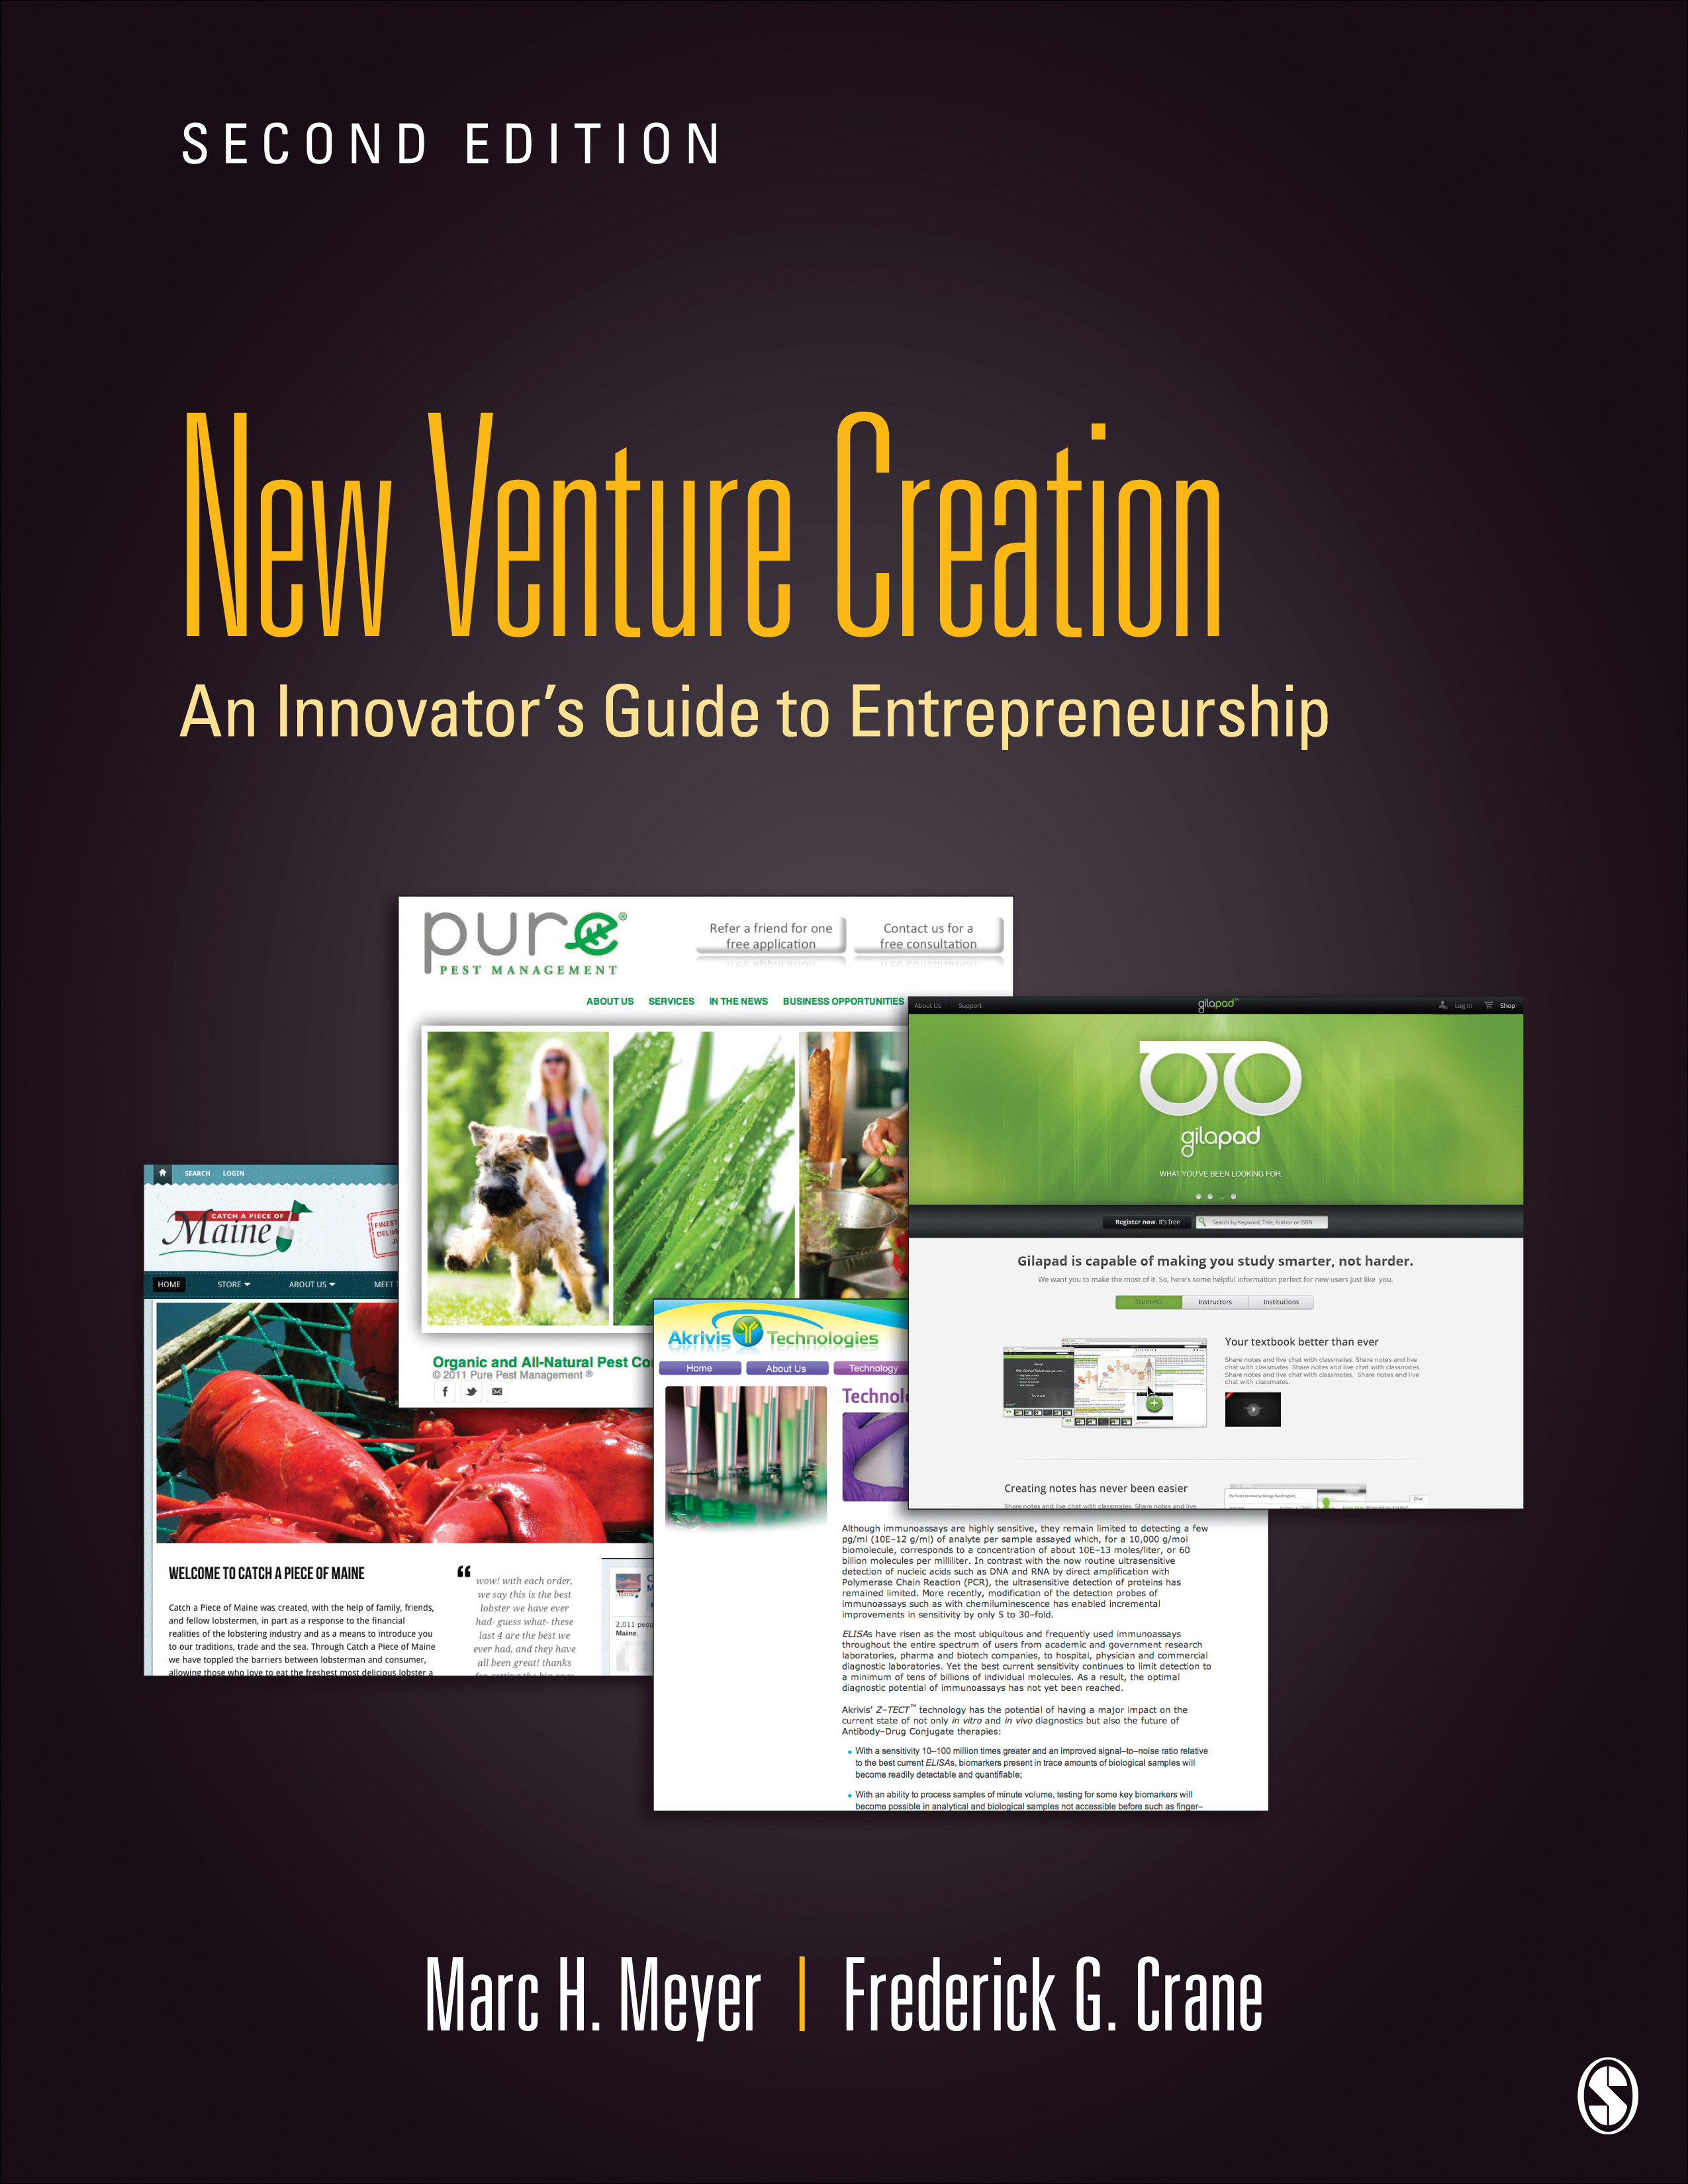 Download Ebook New Venture Creation (2nd ed.) by Marc H. Meyer Pdf